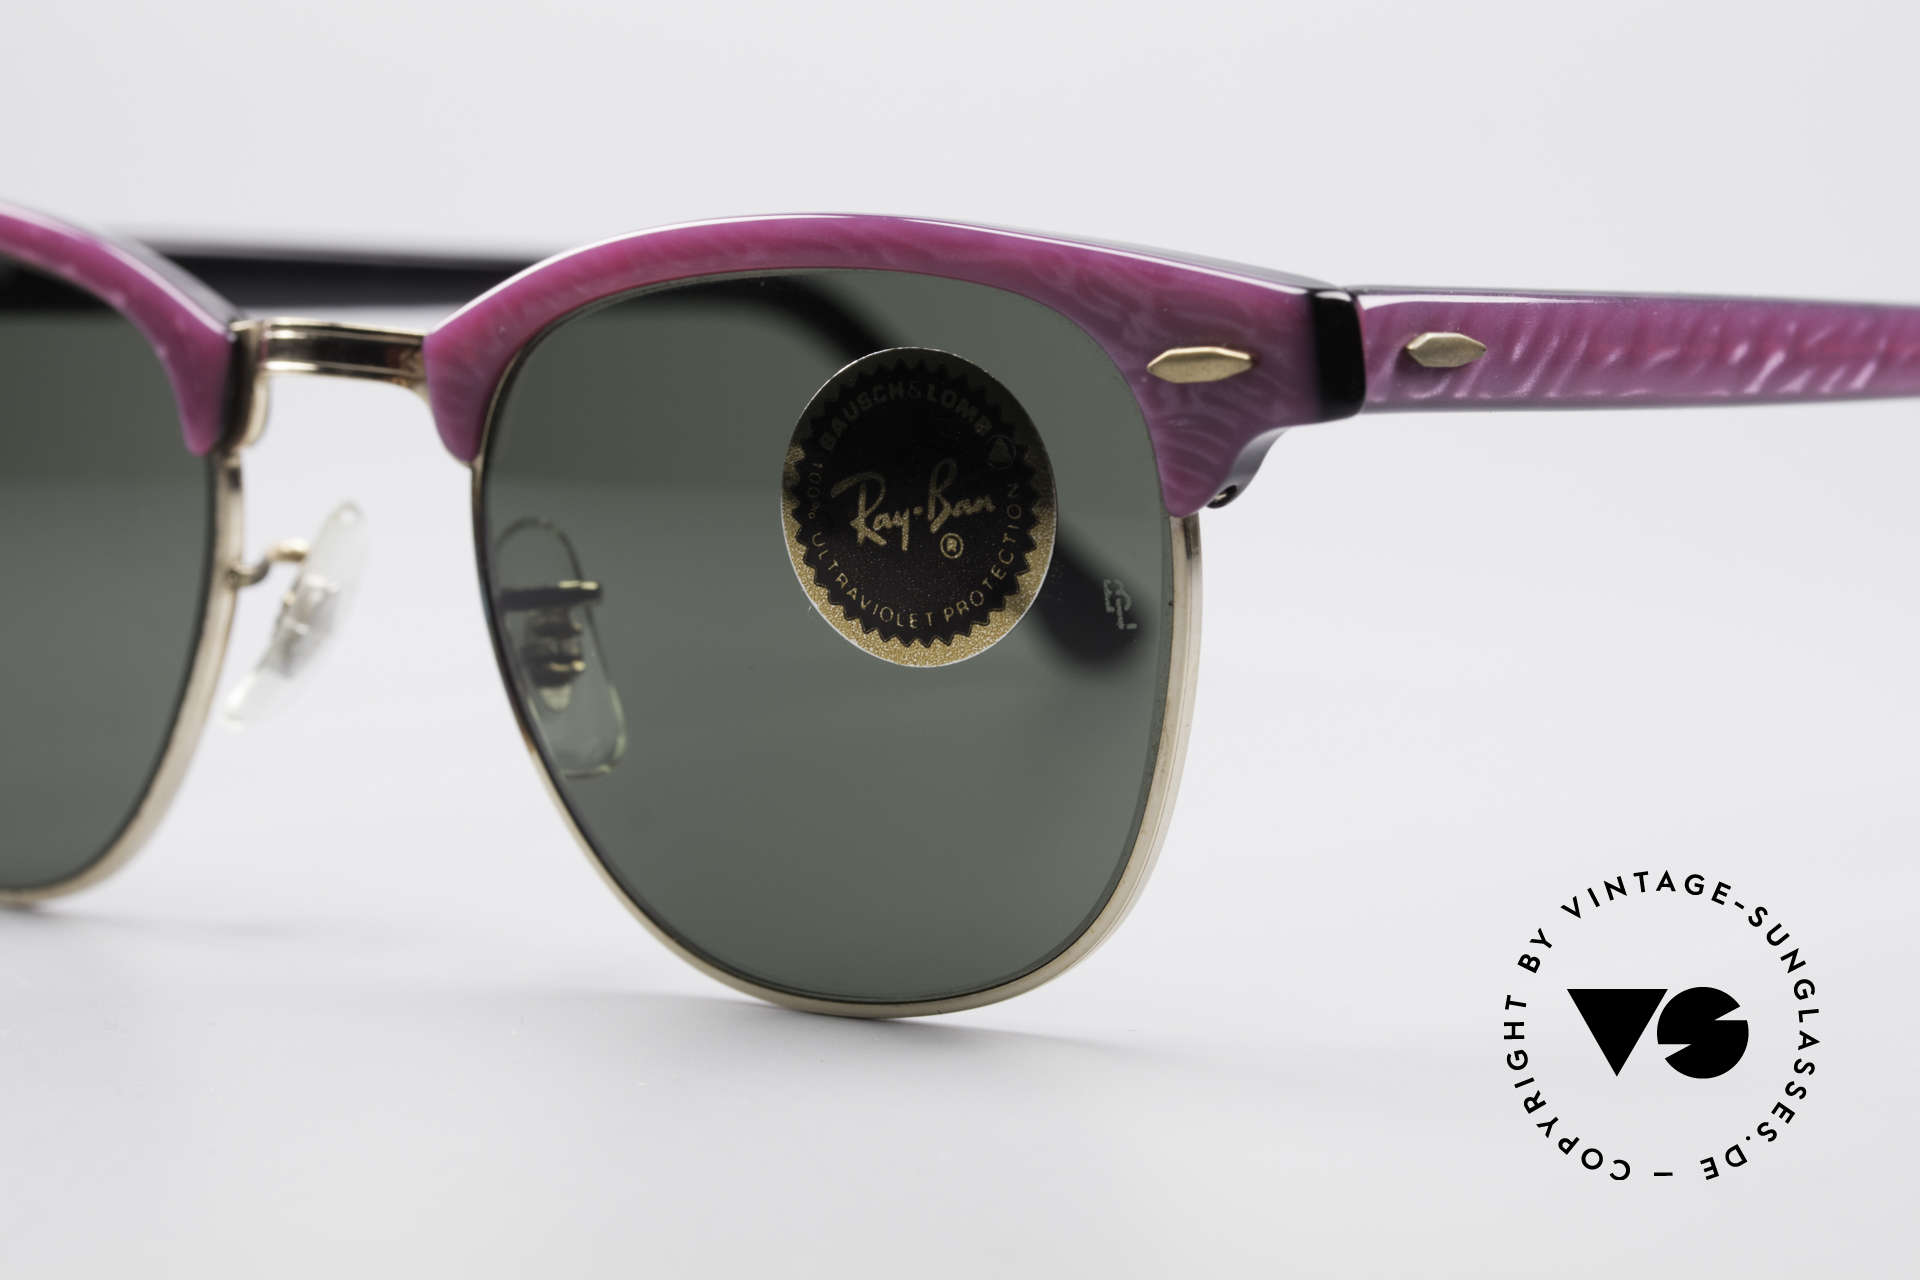 """Ray Ban Clubmaster Bausch & Lomb USA Shades, ladies version with """"electric raspberry"""" coloring, Made for Women"""